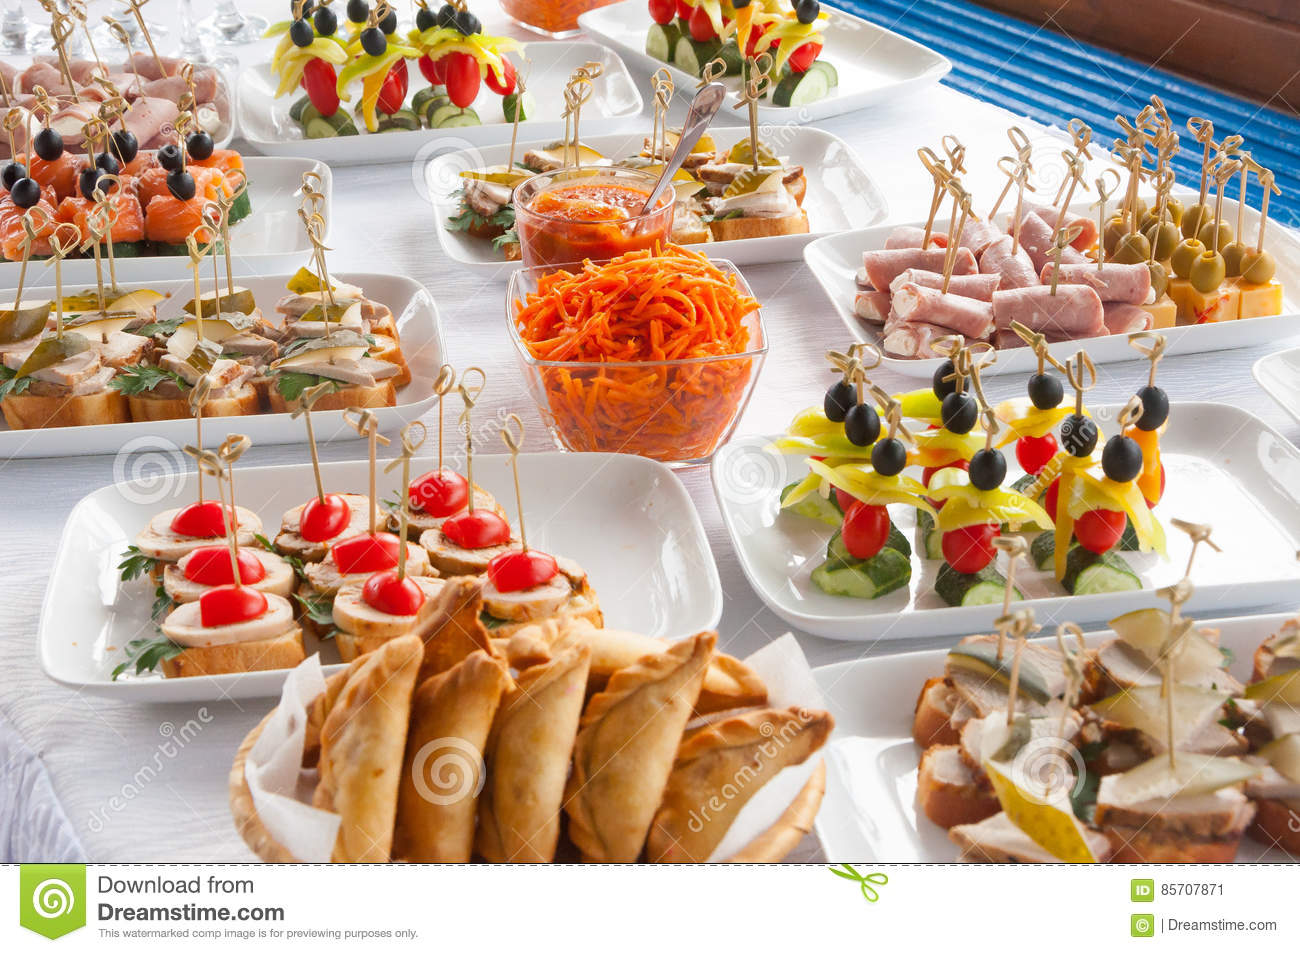 Canapés Wraps Canapes On The White Plates Stock Image Image Of Cheese